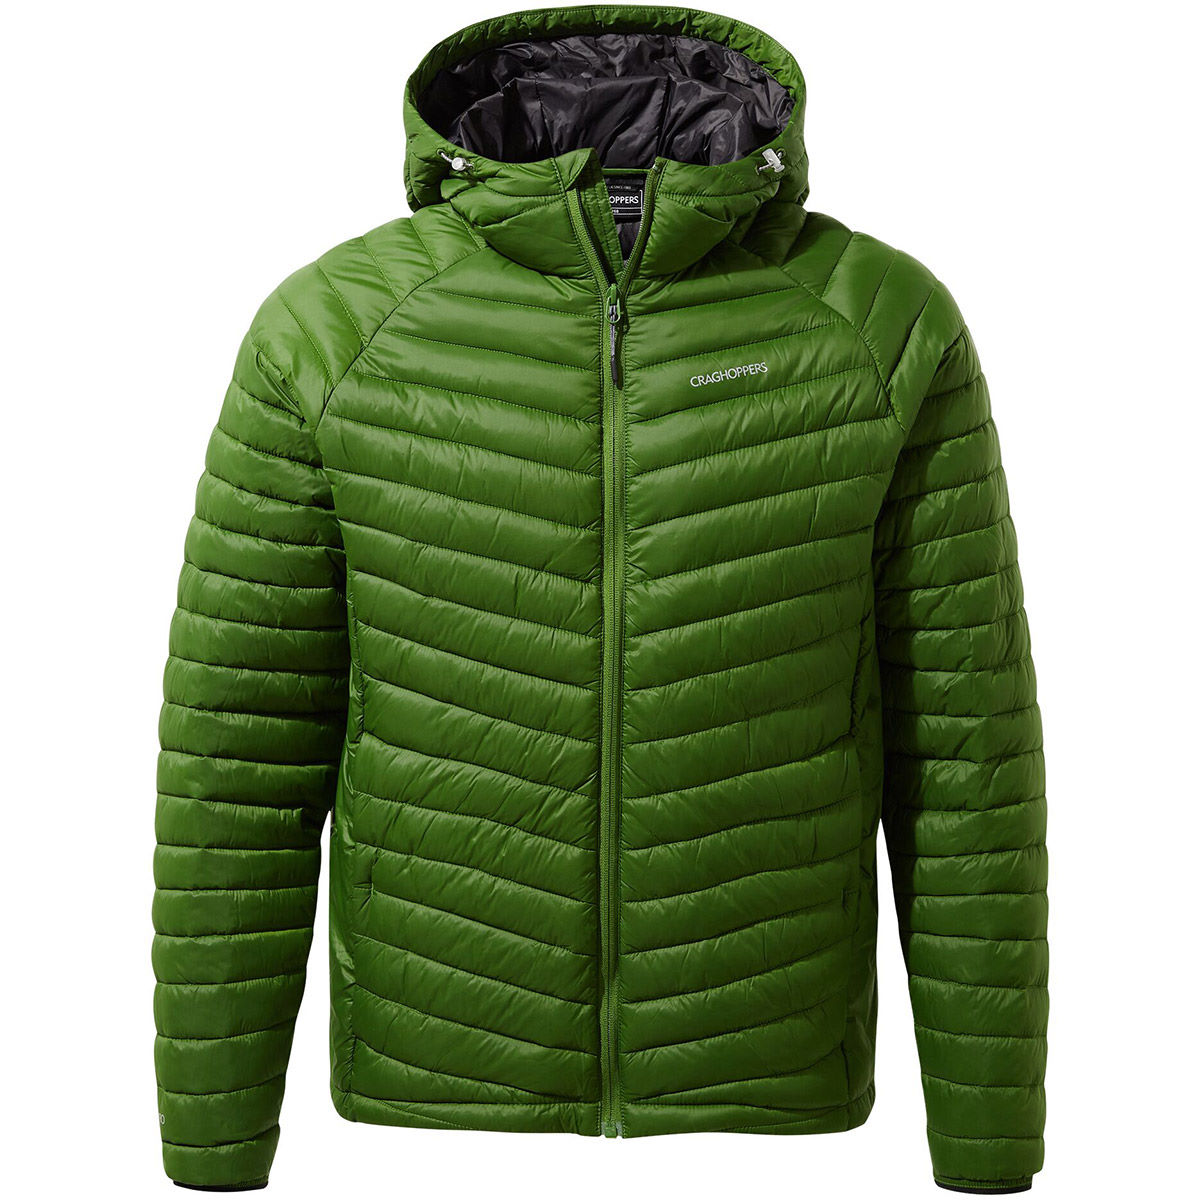 Craghoppers Expolite Hooded Jacket - Small Dark Agave Green  Jackets